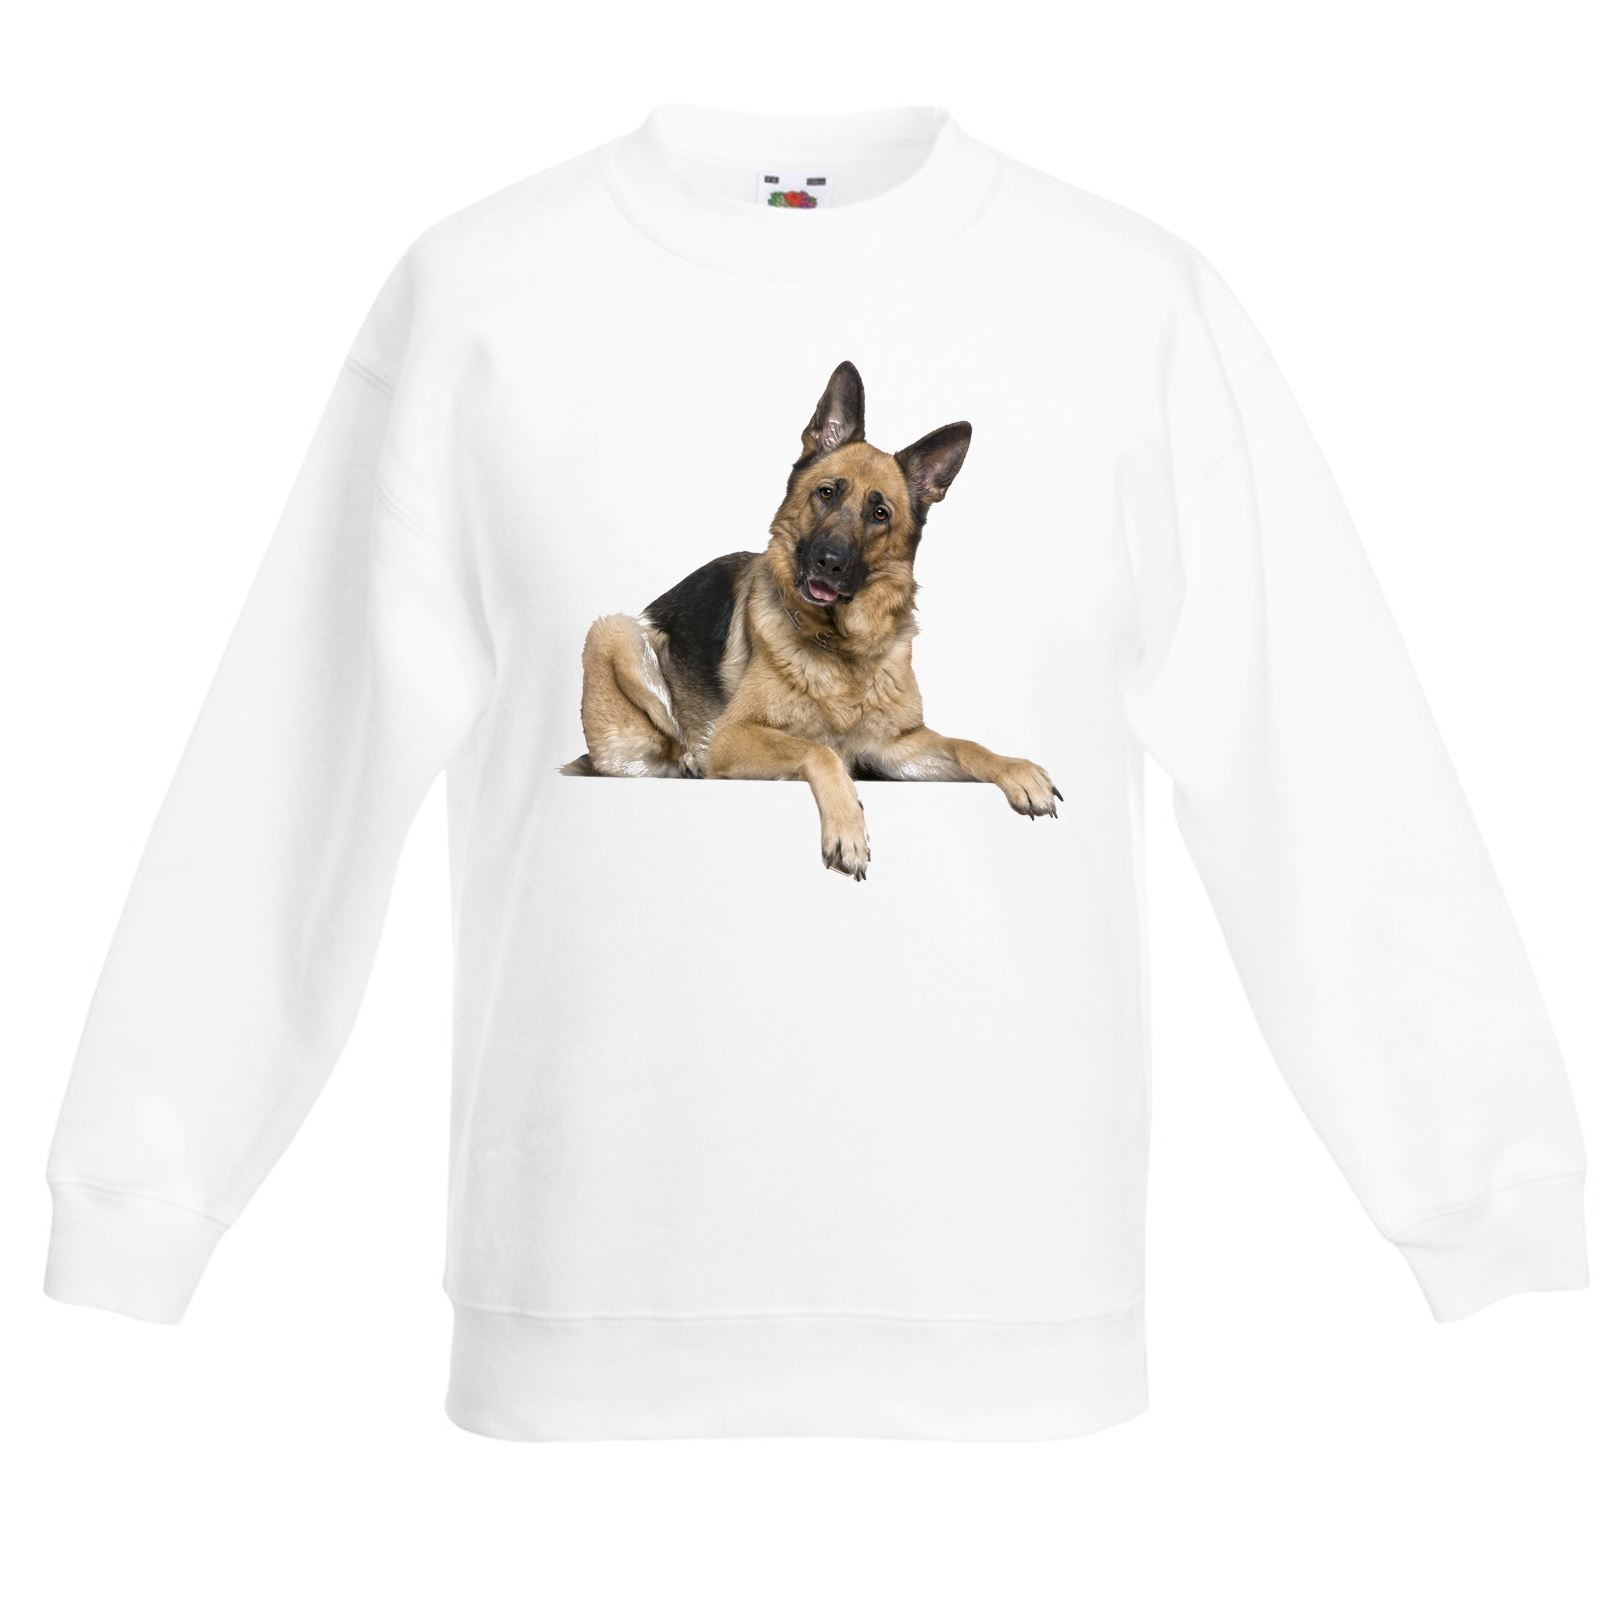 German Shepherd Kid/'s T-Shirt Children Boys Girls Unisex Top Puppy Dog Lover